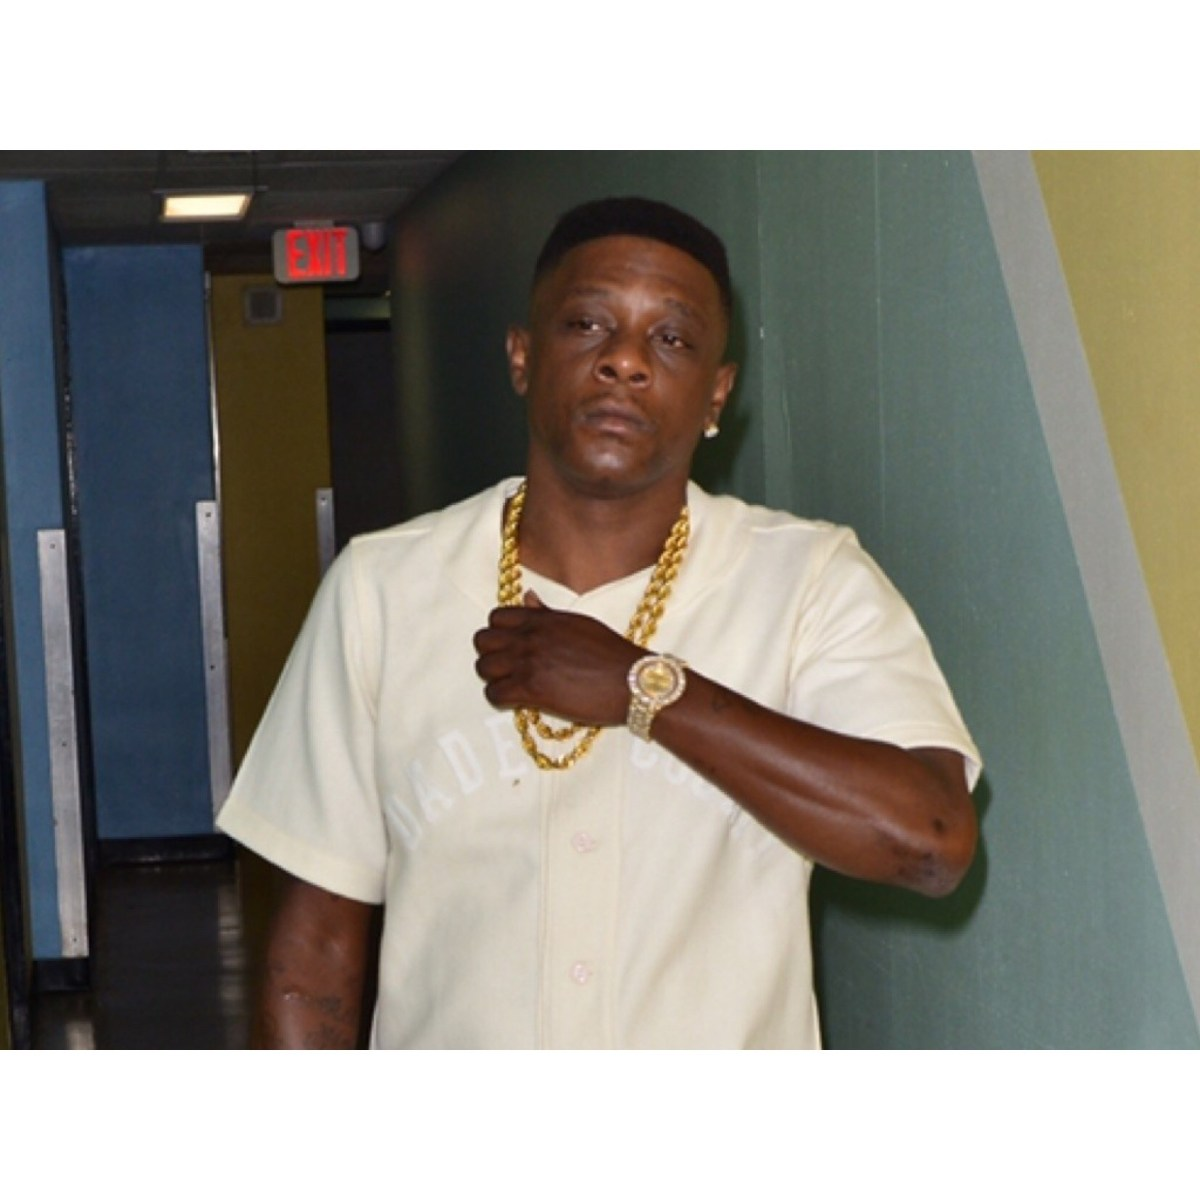 Lil Boosie speaks on Women Staying with Cheating Men